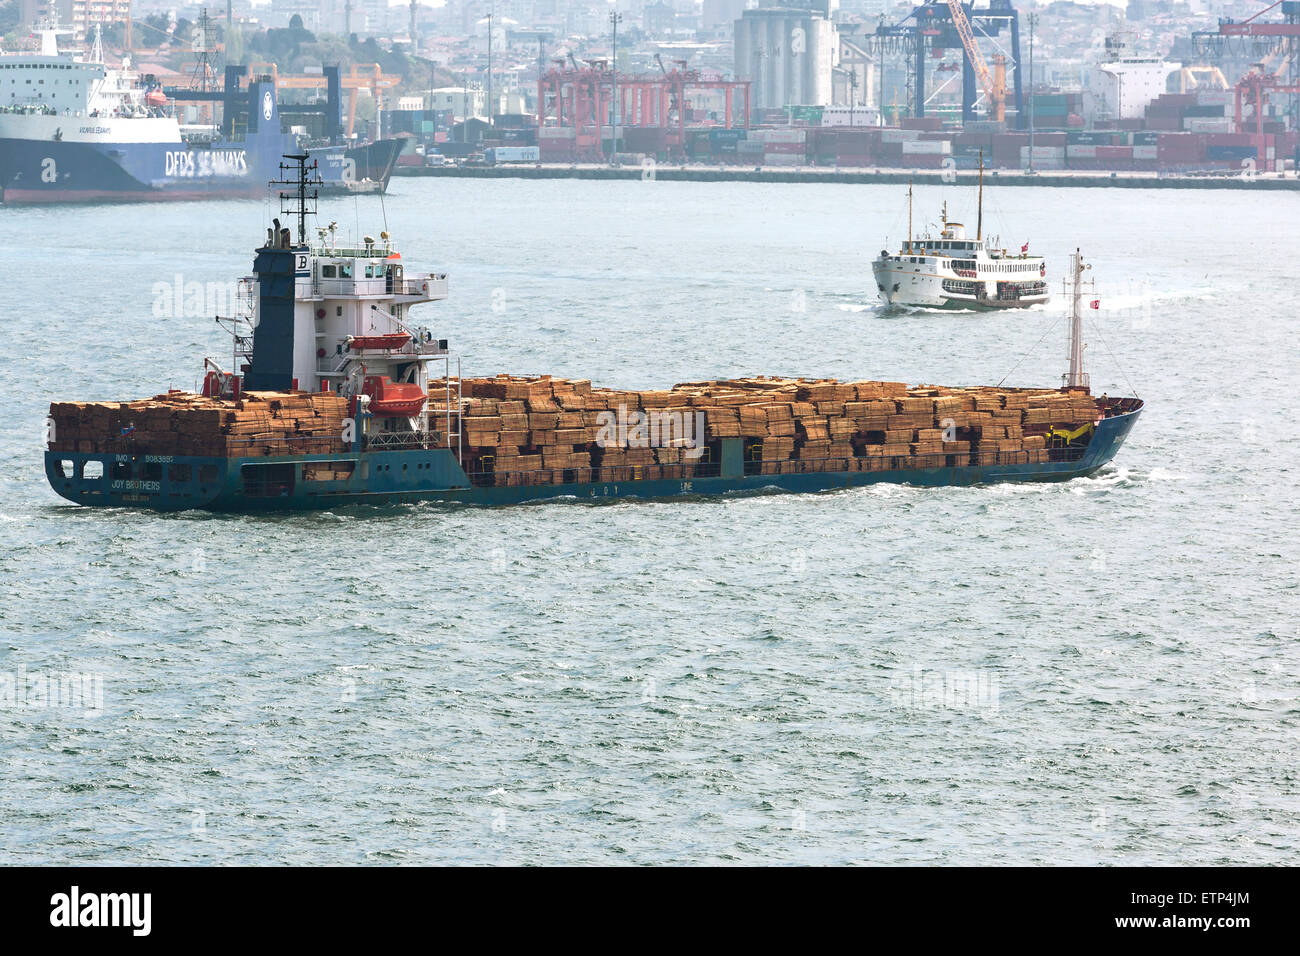 Heavily laden cargo vessel carrying timber. Port of Istanbul Turkey - Stock Image